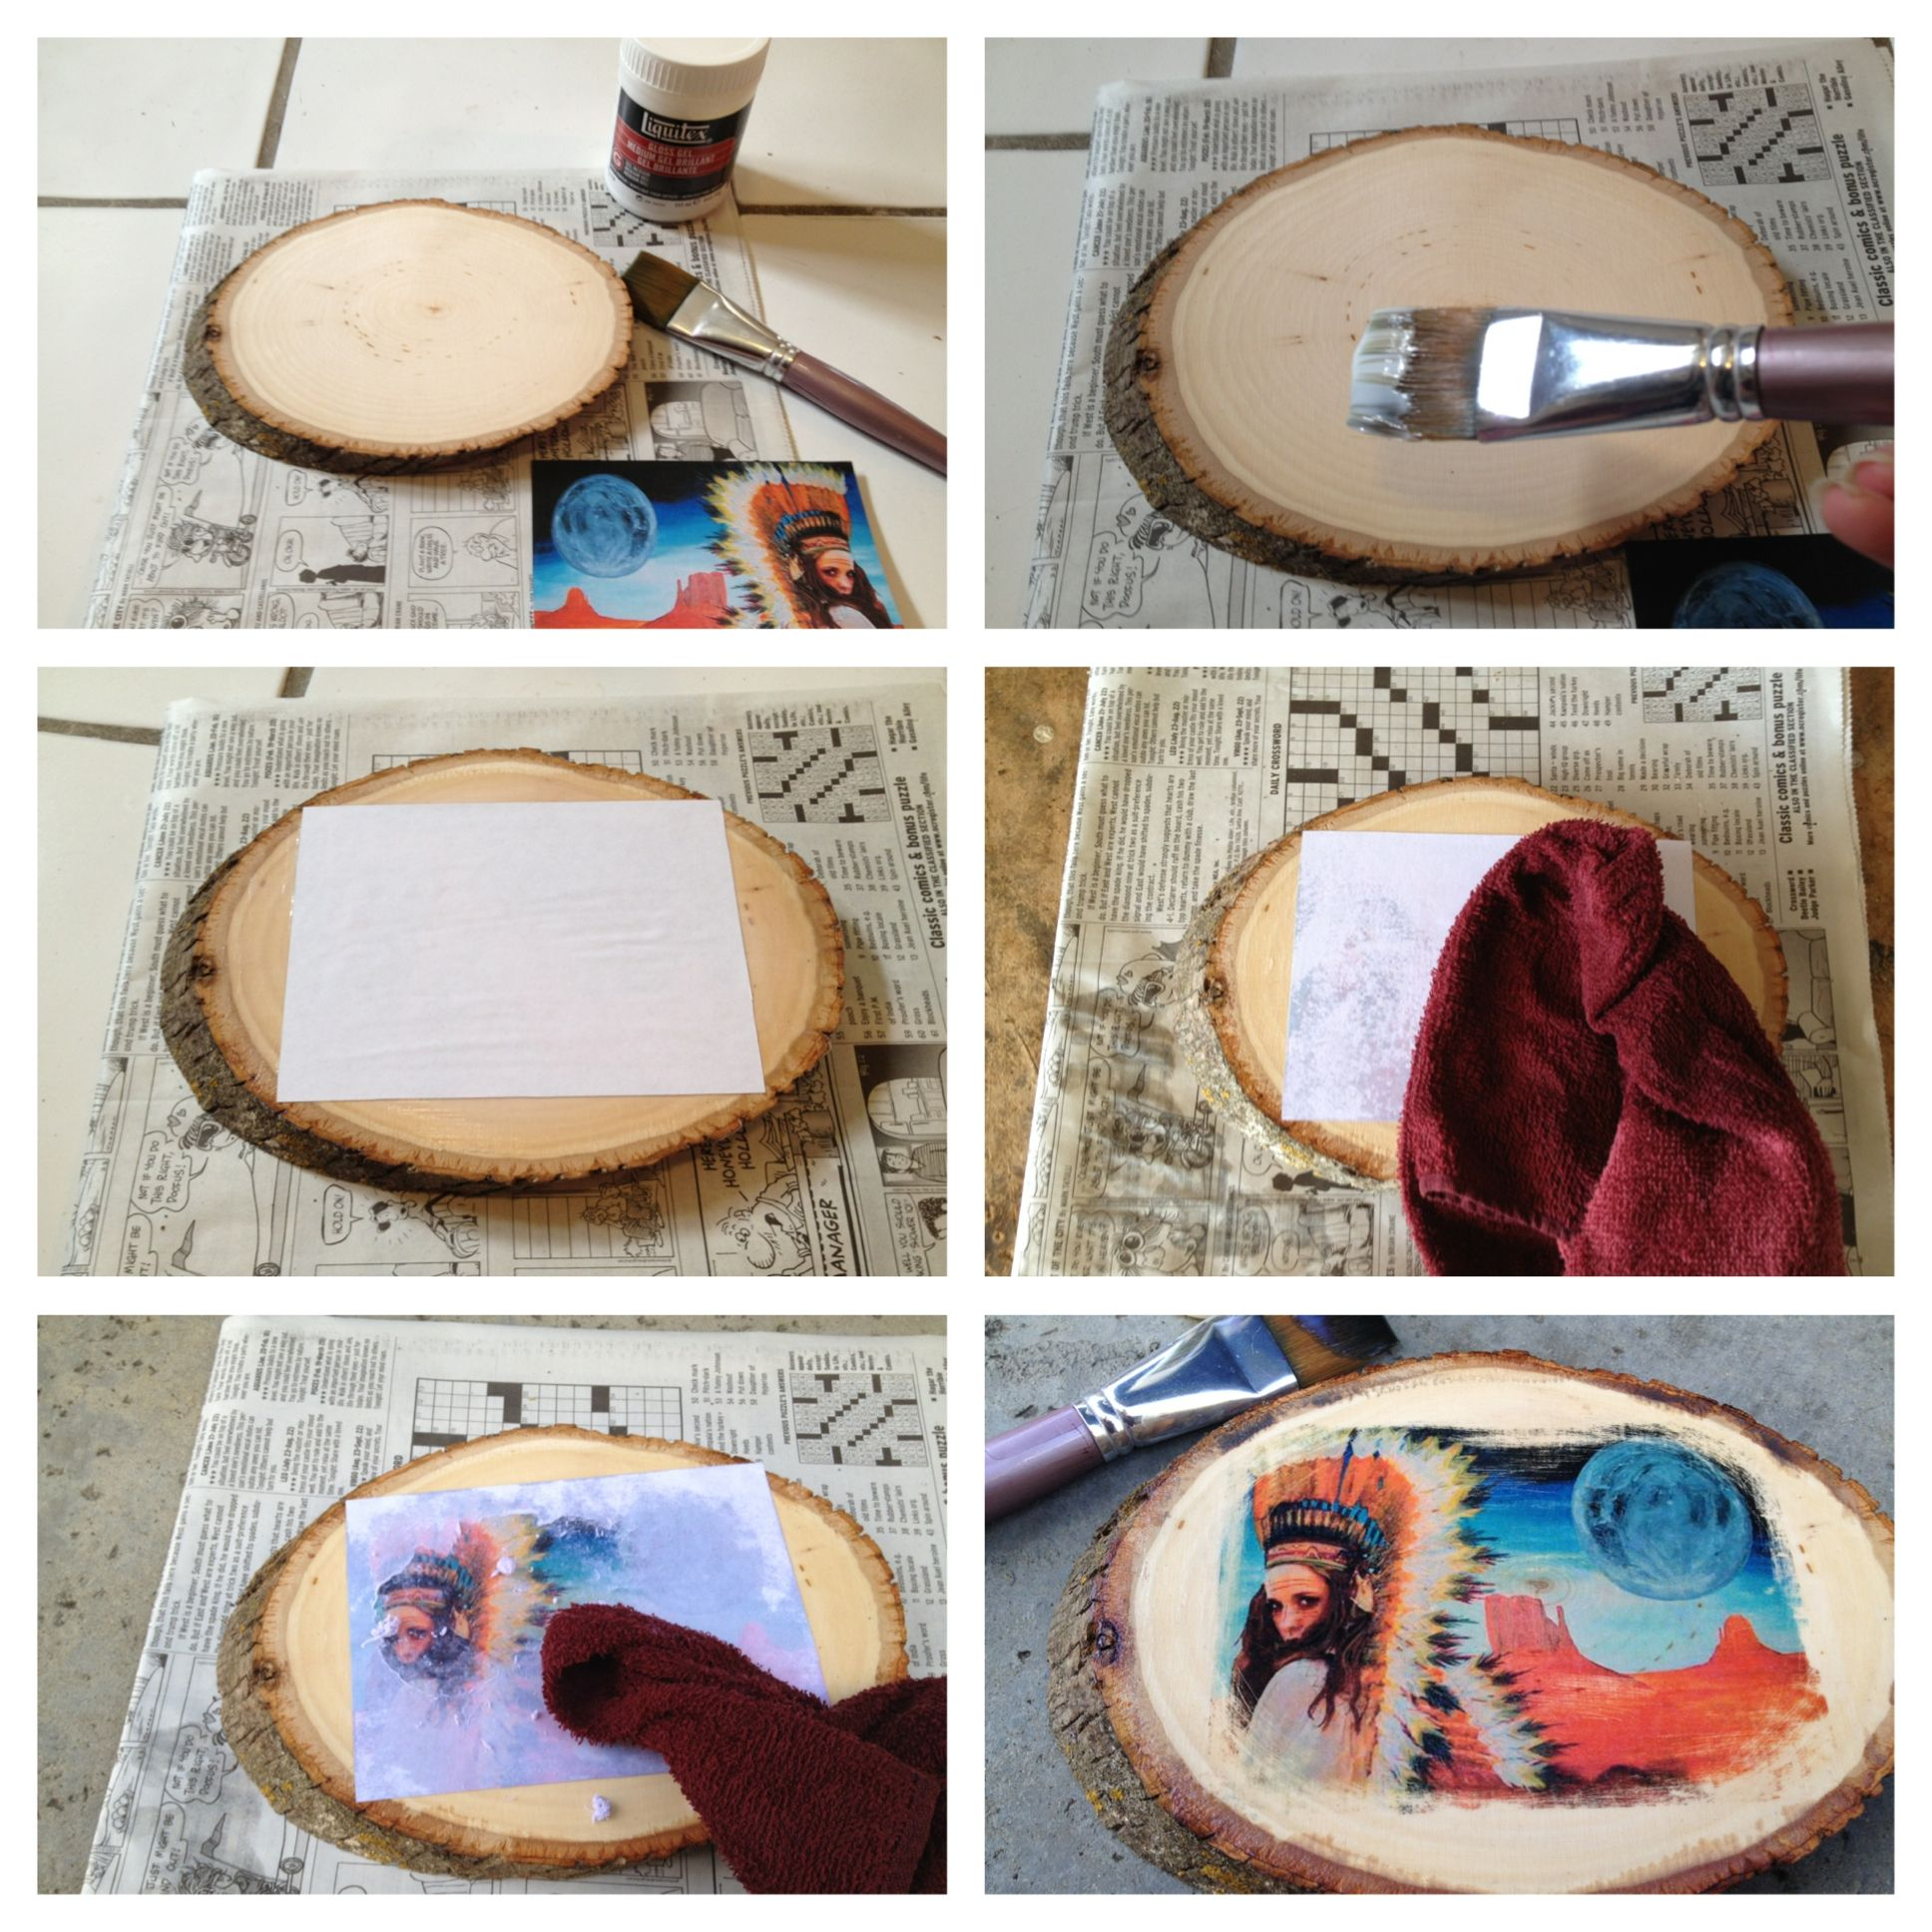 PhotoTransfer on Wood:    Stp 1: Print out image on computer paper (laser printe...